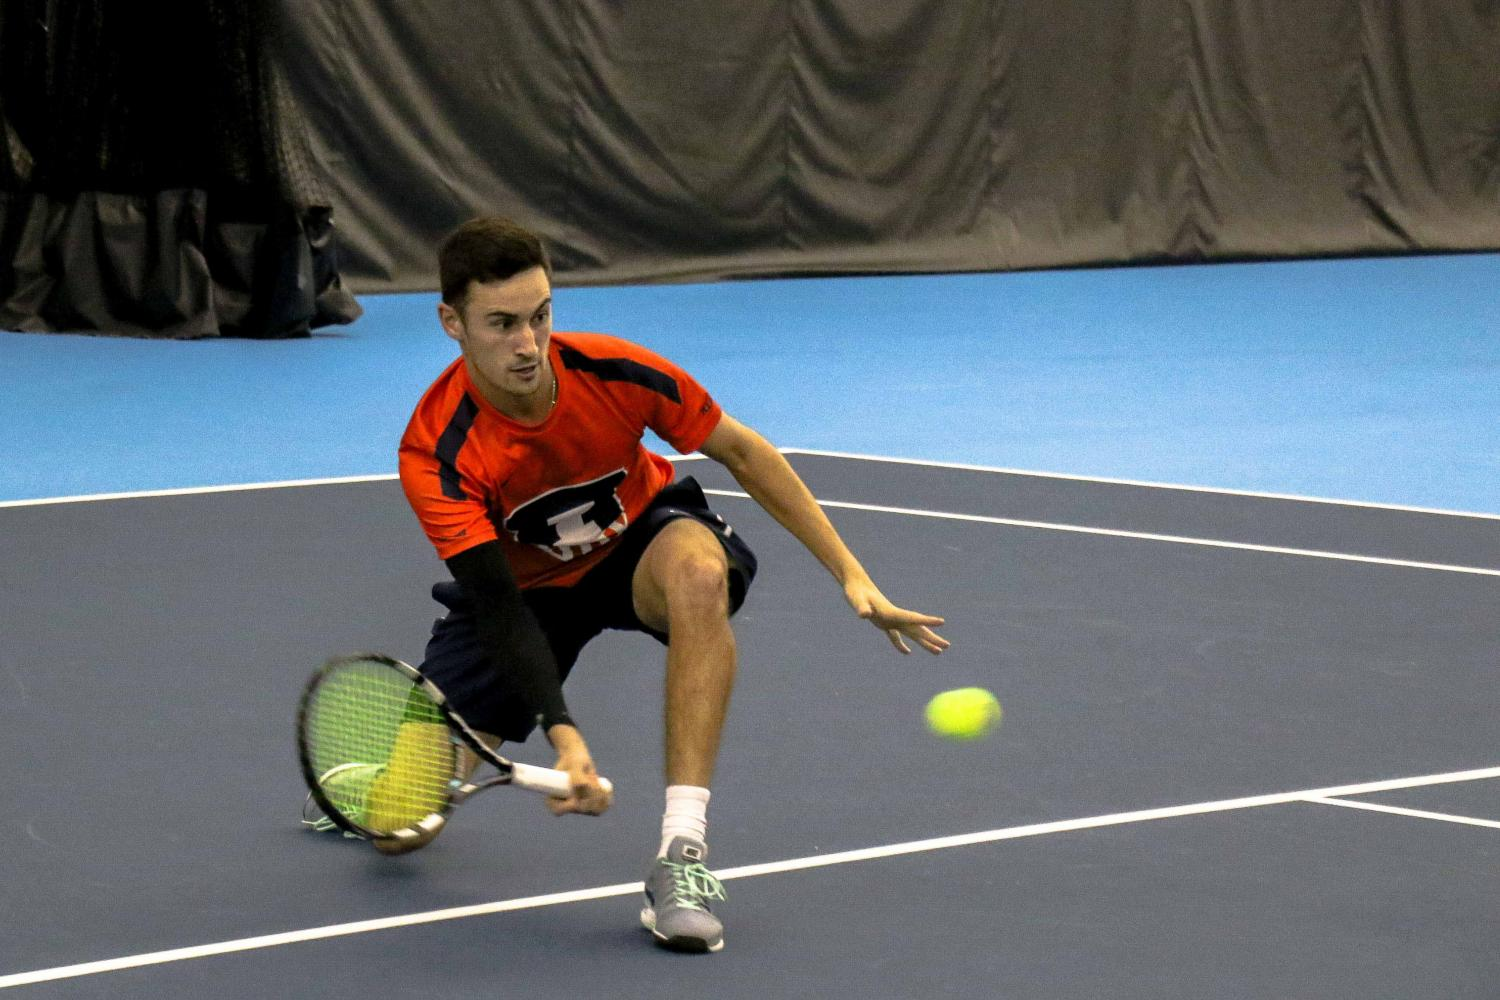 Illinois%27+Alex+Jesse+goes+low+to+return+the+ball+in+the+match+against+University+of+Kentucky+on+Friday%2C+Feb.+24+at+the+Atkins+Tennis+Center+in+Urbana.